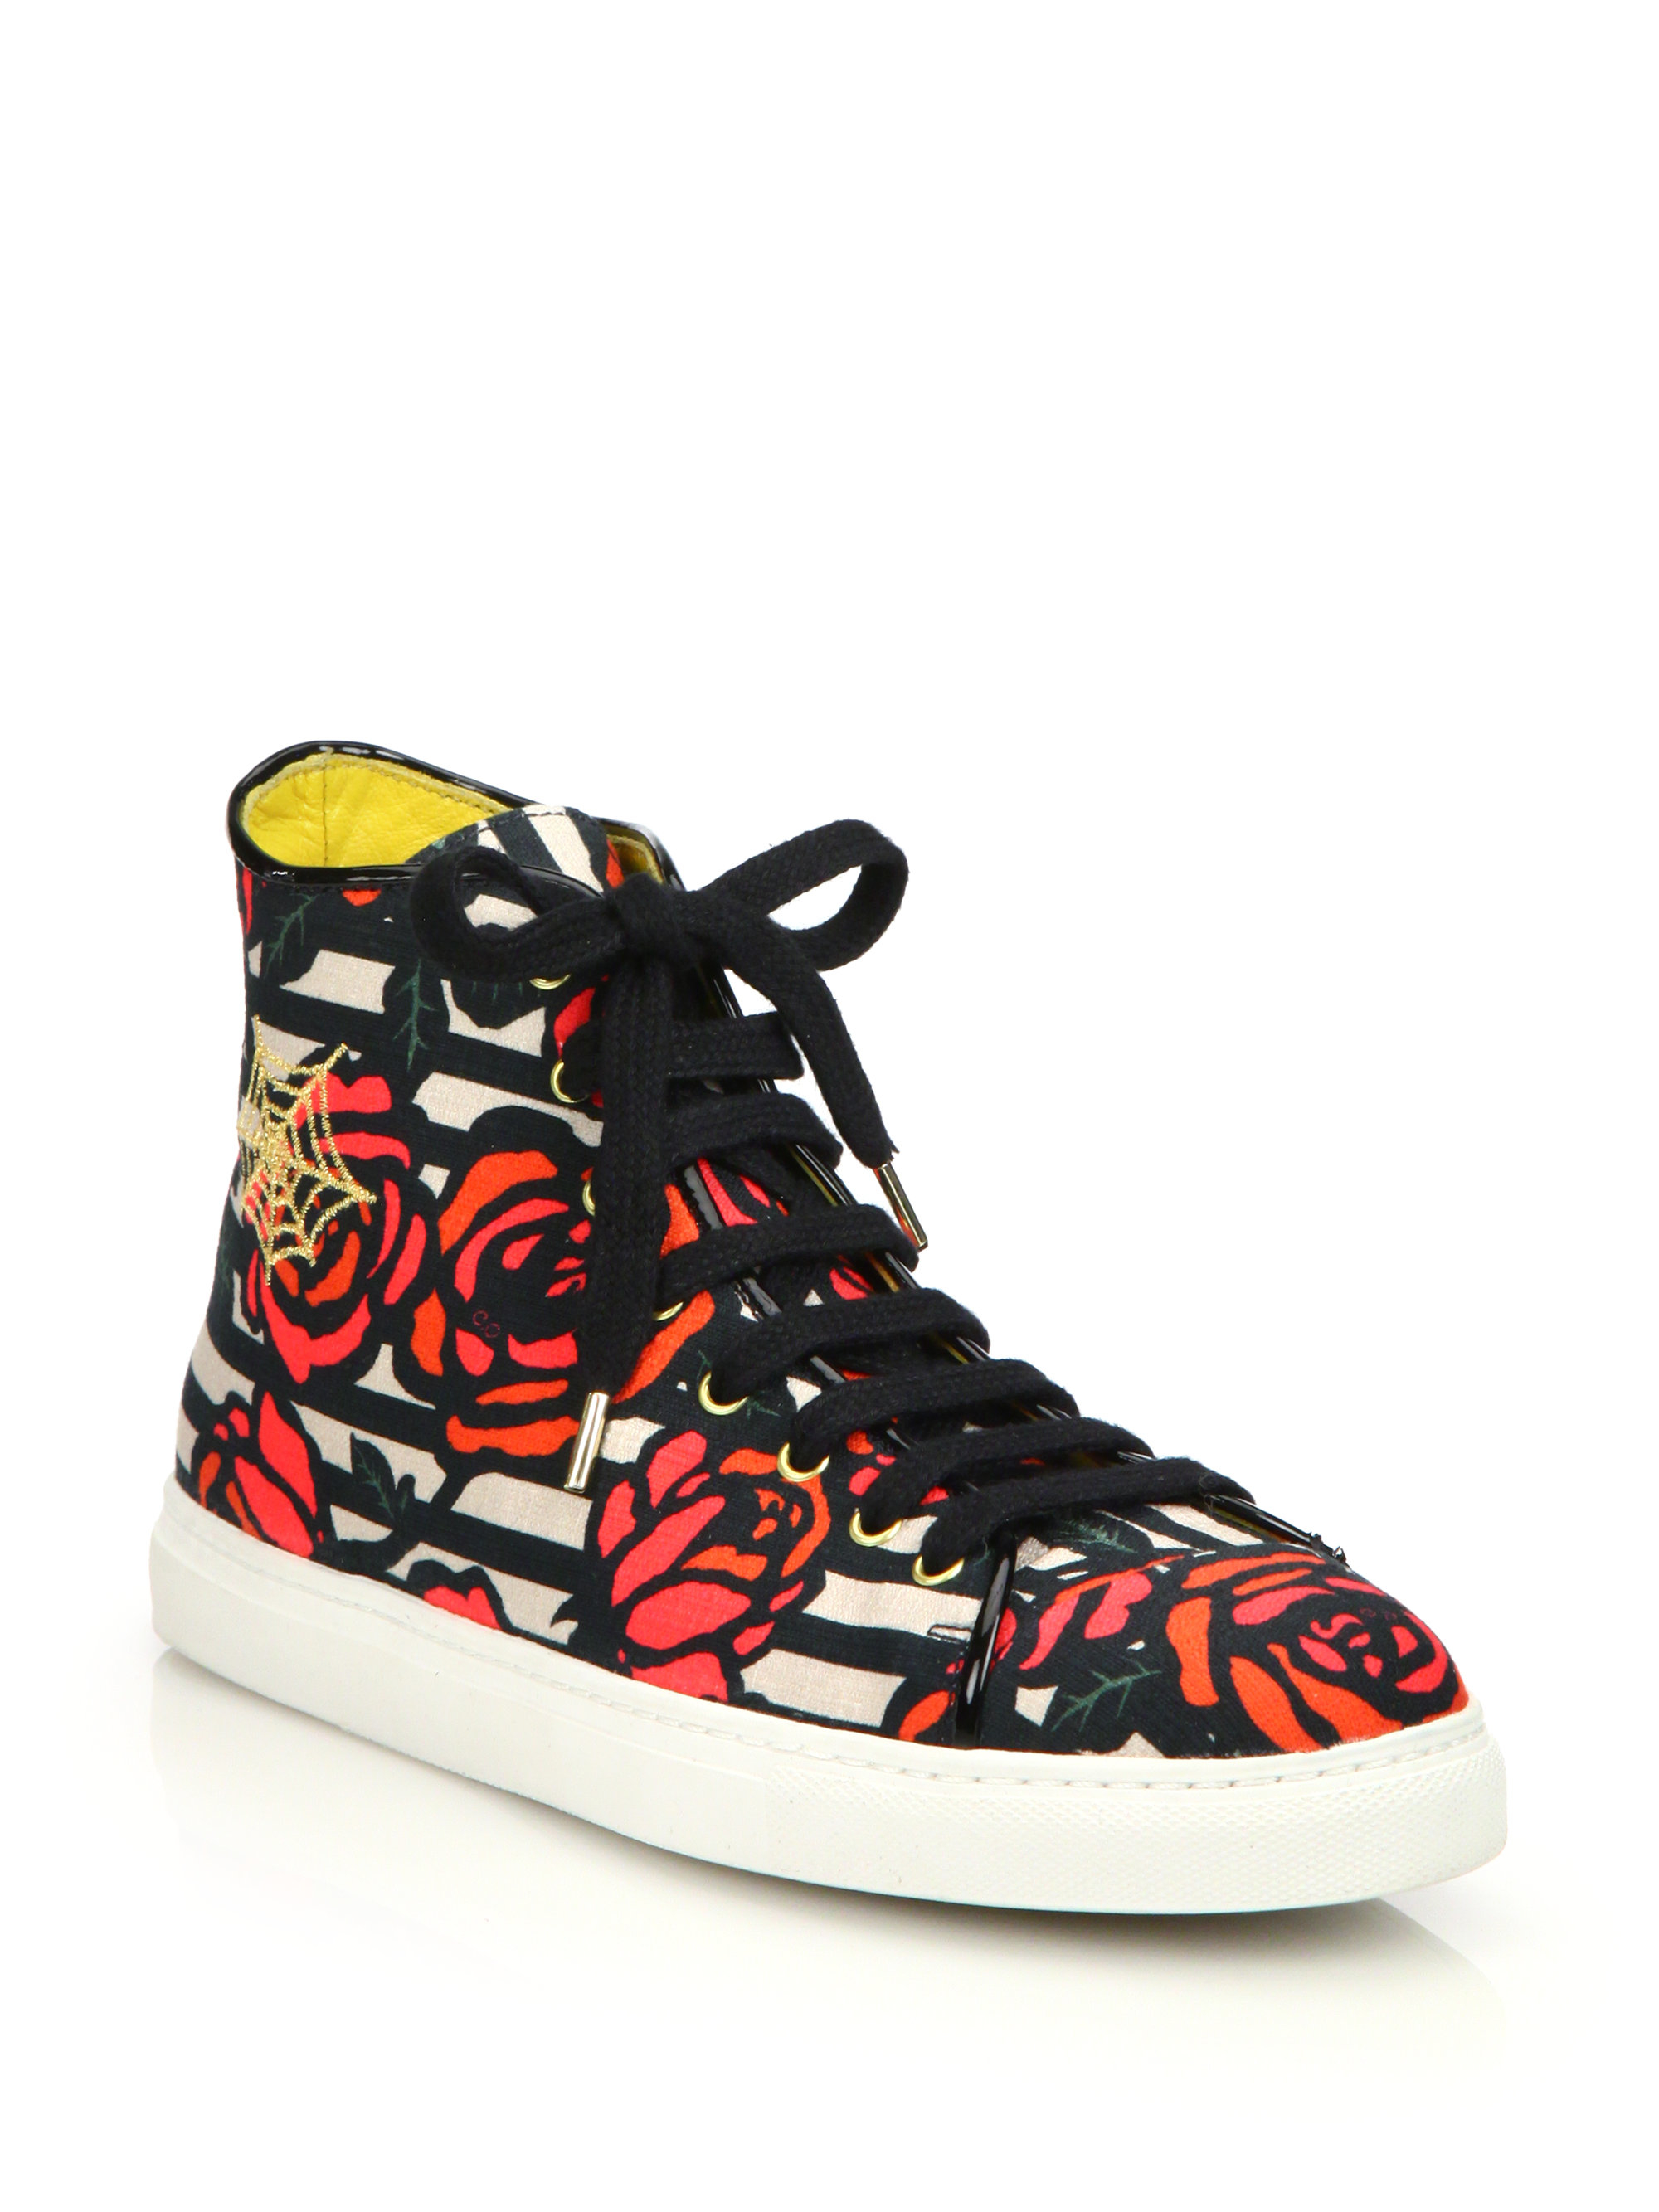 Charlotte olympia rose print embroidered high top sneakers